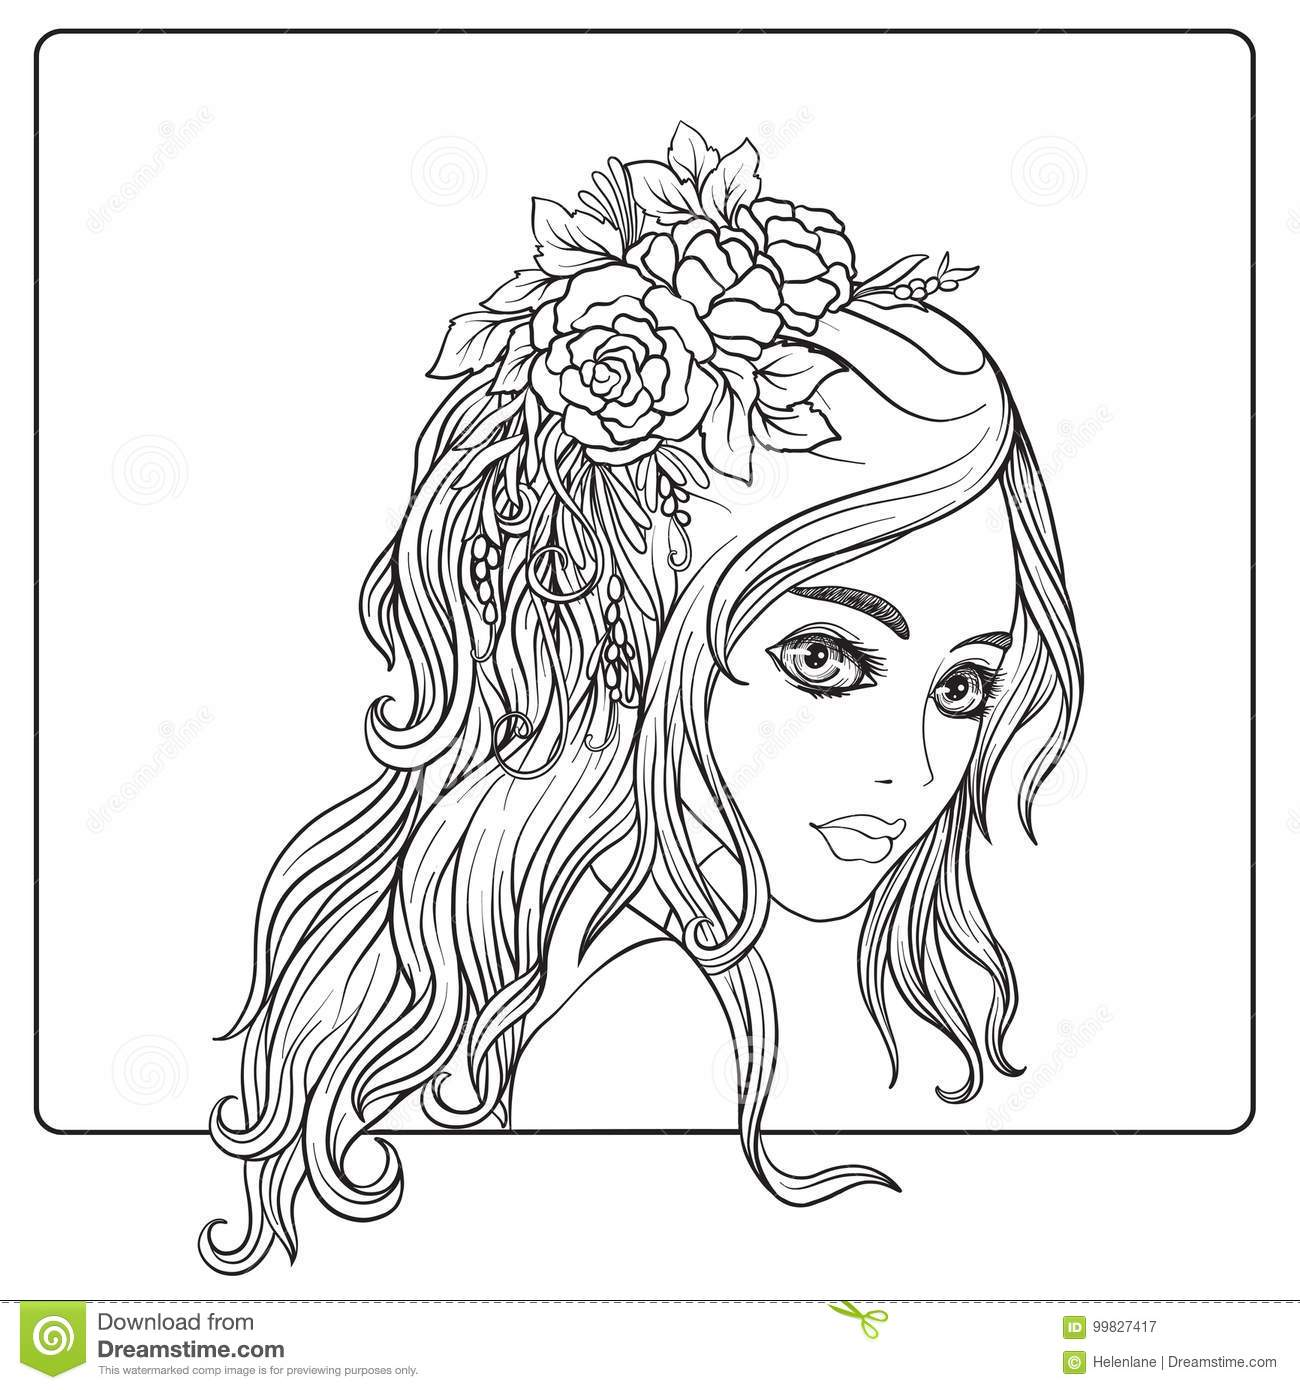 A Young Beautiful Girl With A Wreath Of Flowers On Her Head. Stock ...